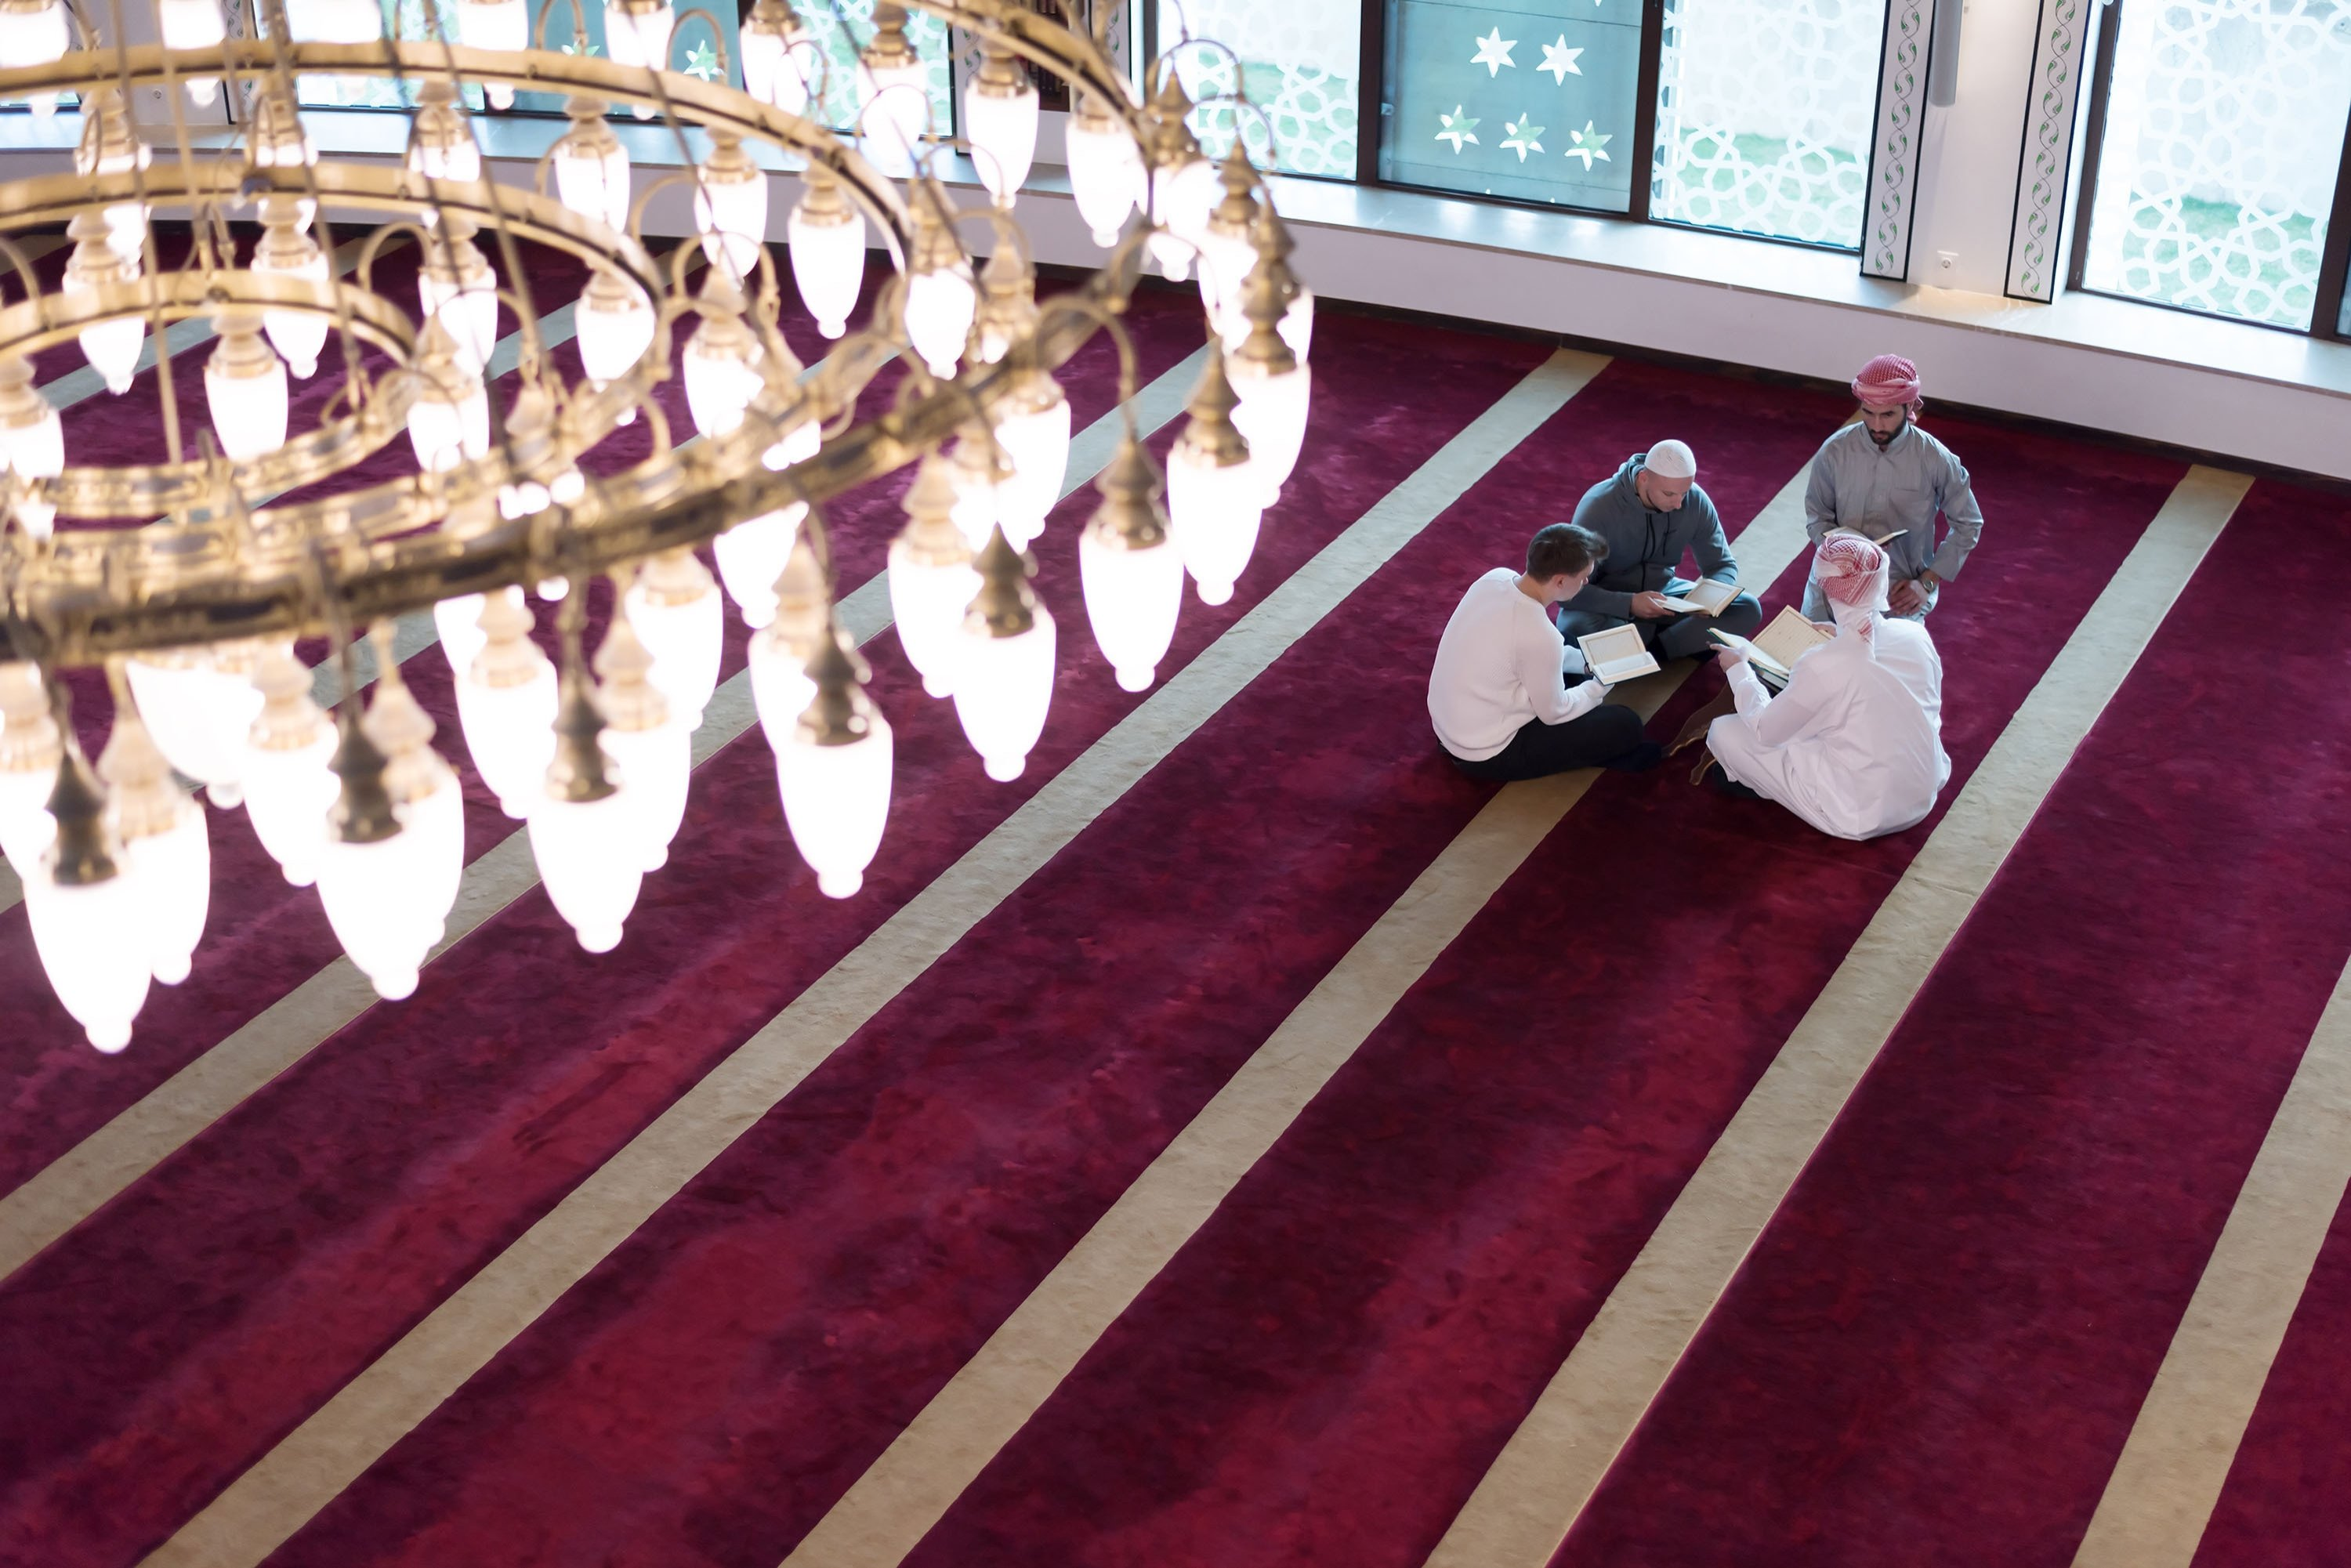 A group of people read the Quran, the holy book of Islam, inside a mosque. (Shutterstock Photo)